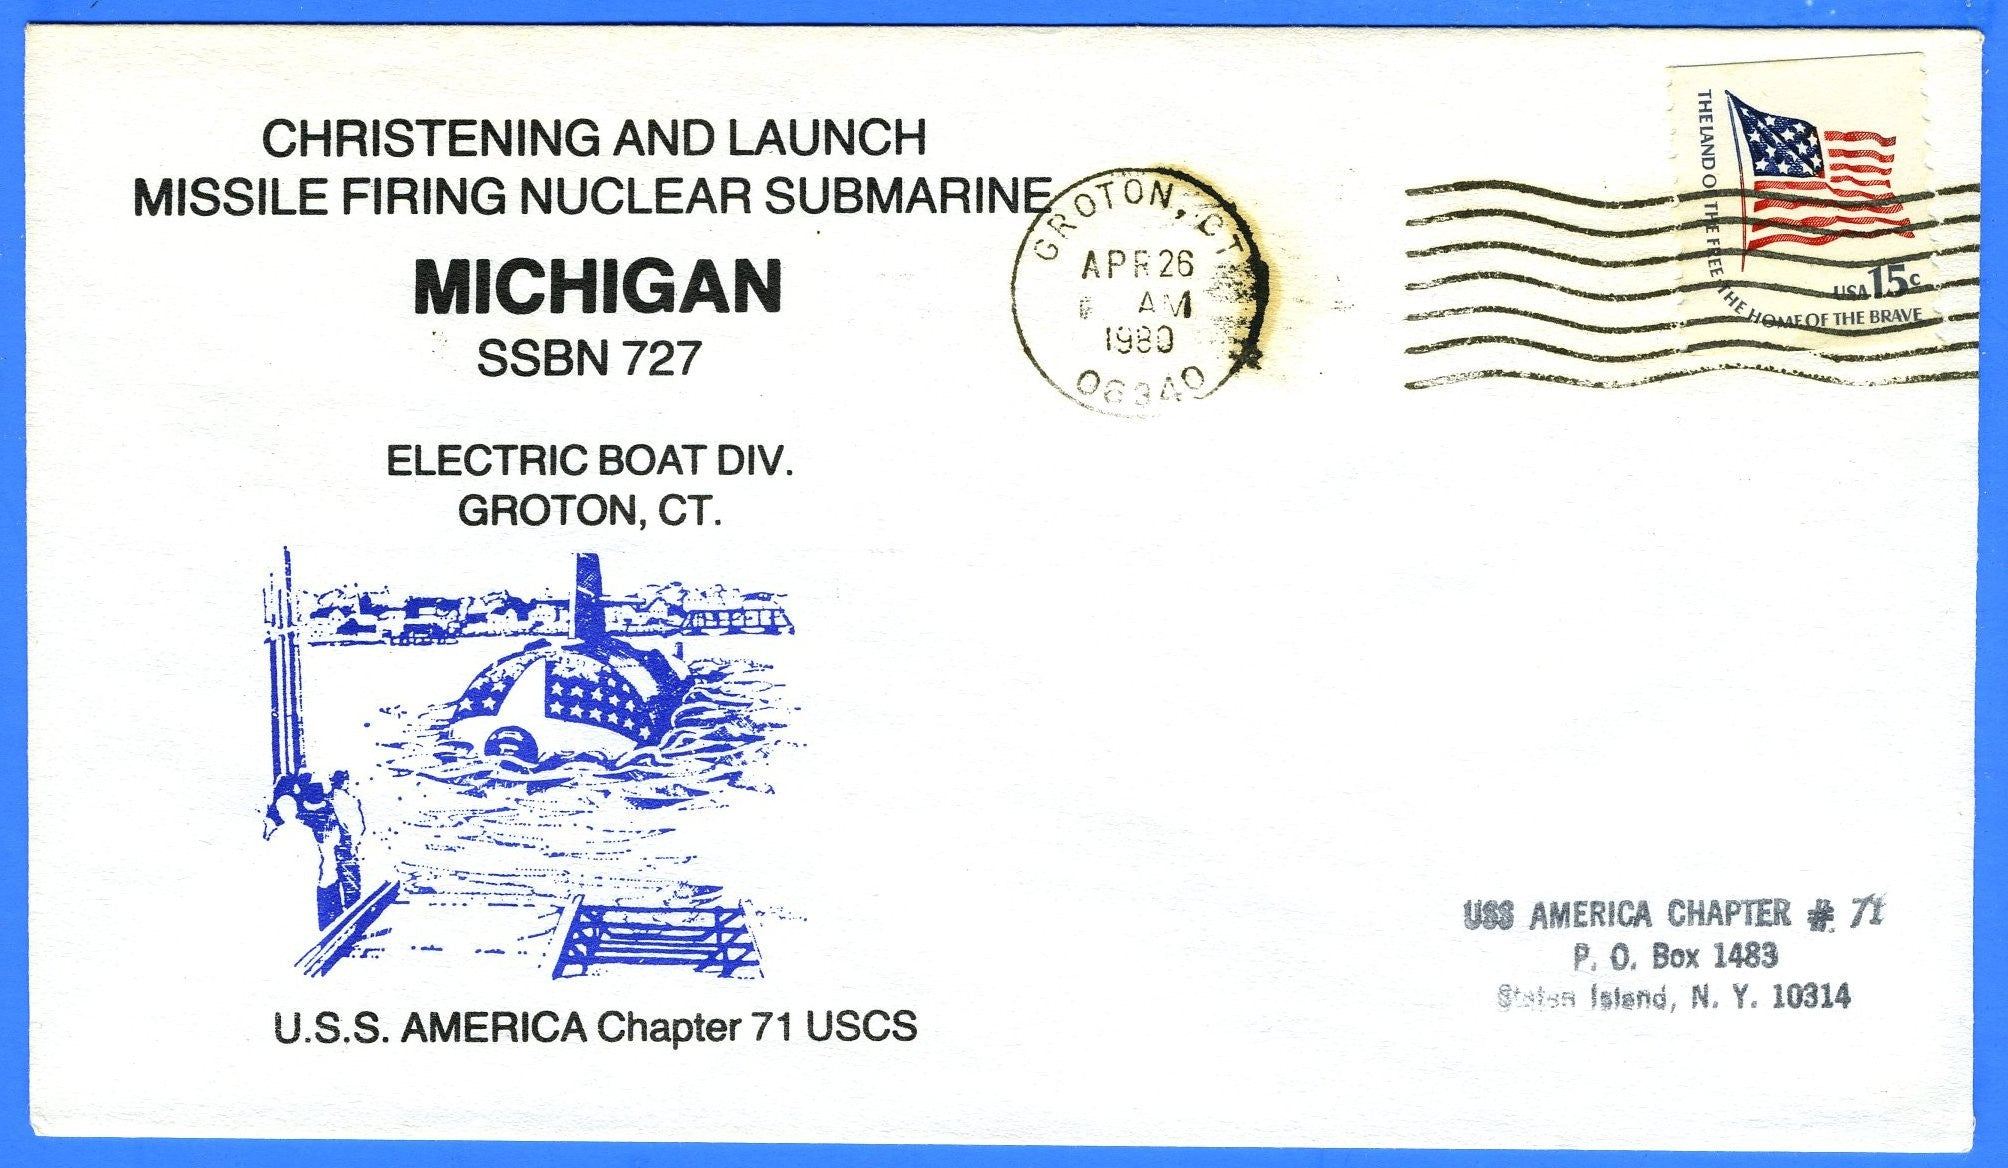 USS Michigan SSBN-727 Christened & Launched April 26, 1980